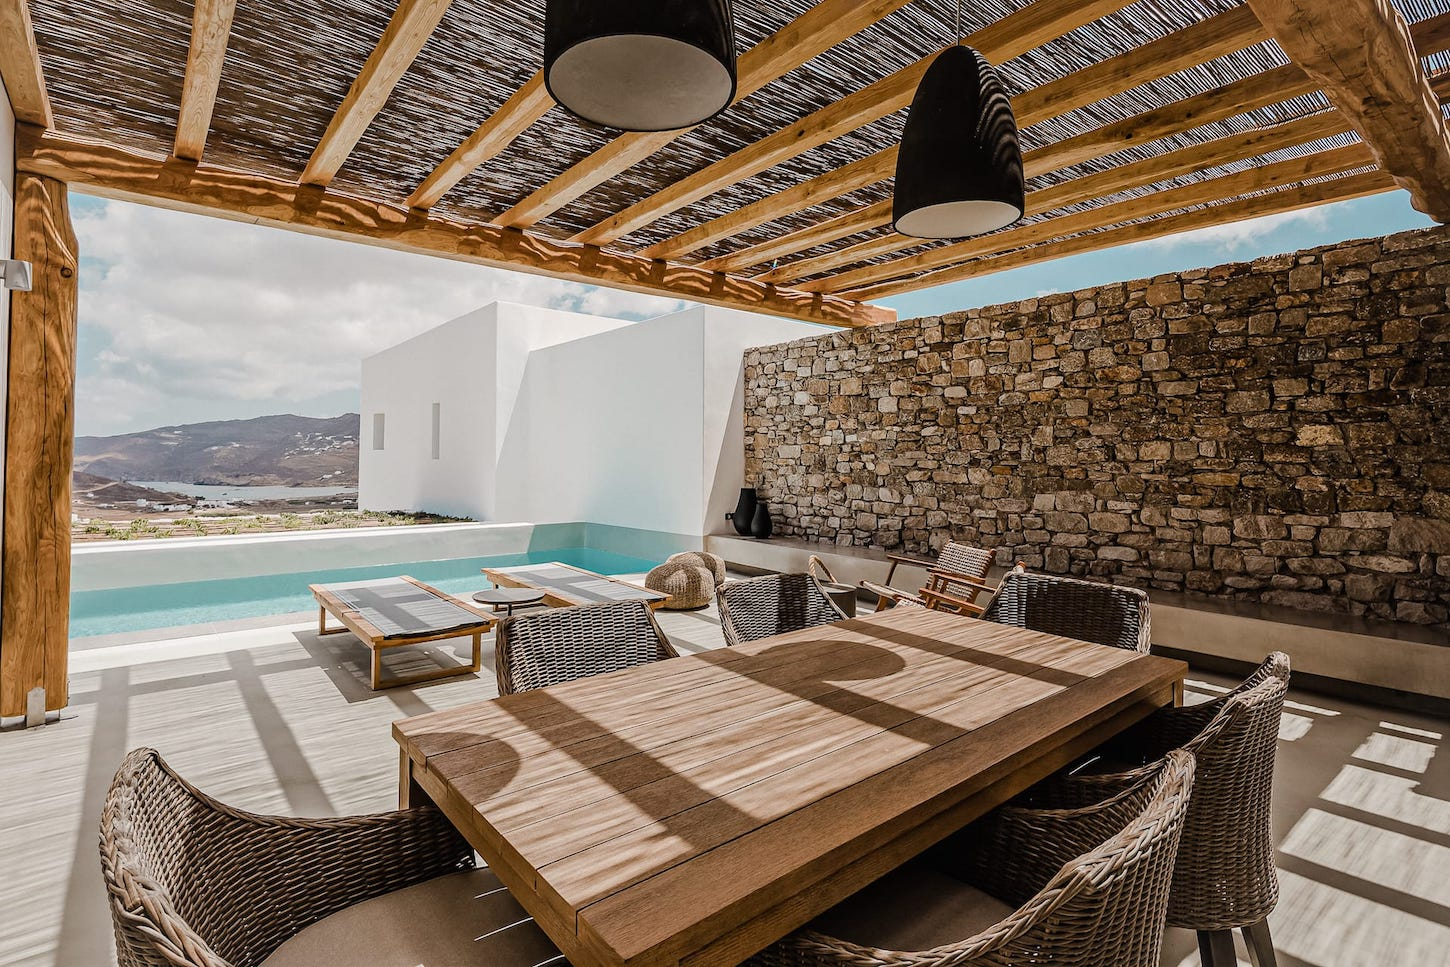 The villa Iris private terrace with table and chairs. A 1 bedroom luxury villa in Ftelia, Mykonos.